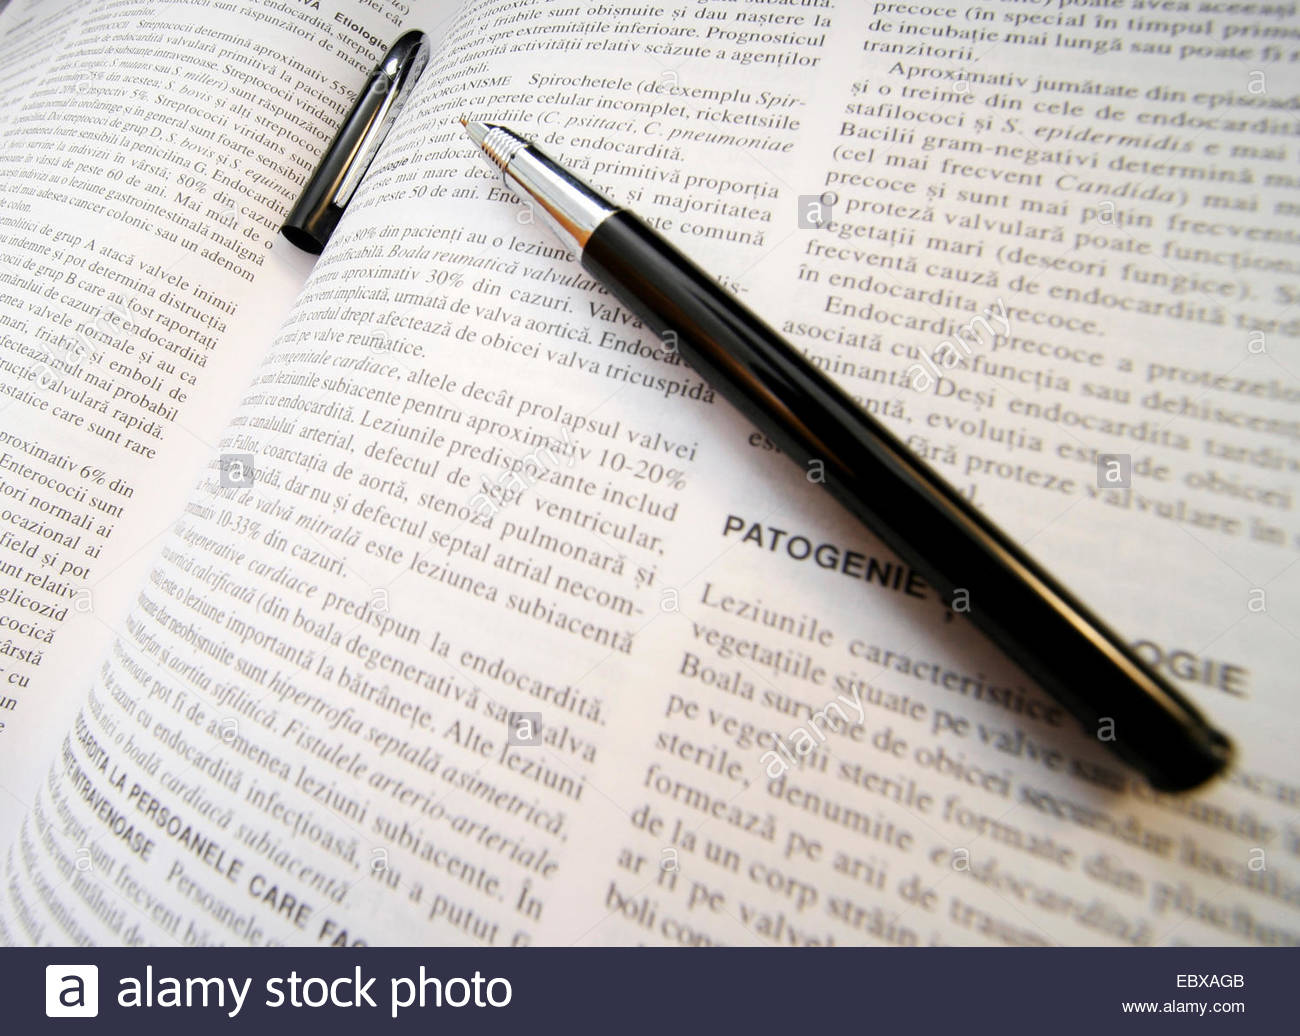 Open Book With Pen On It Stock Photo: 76181739